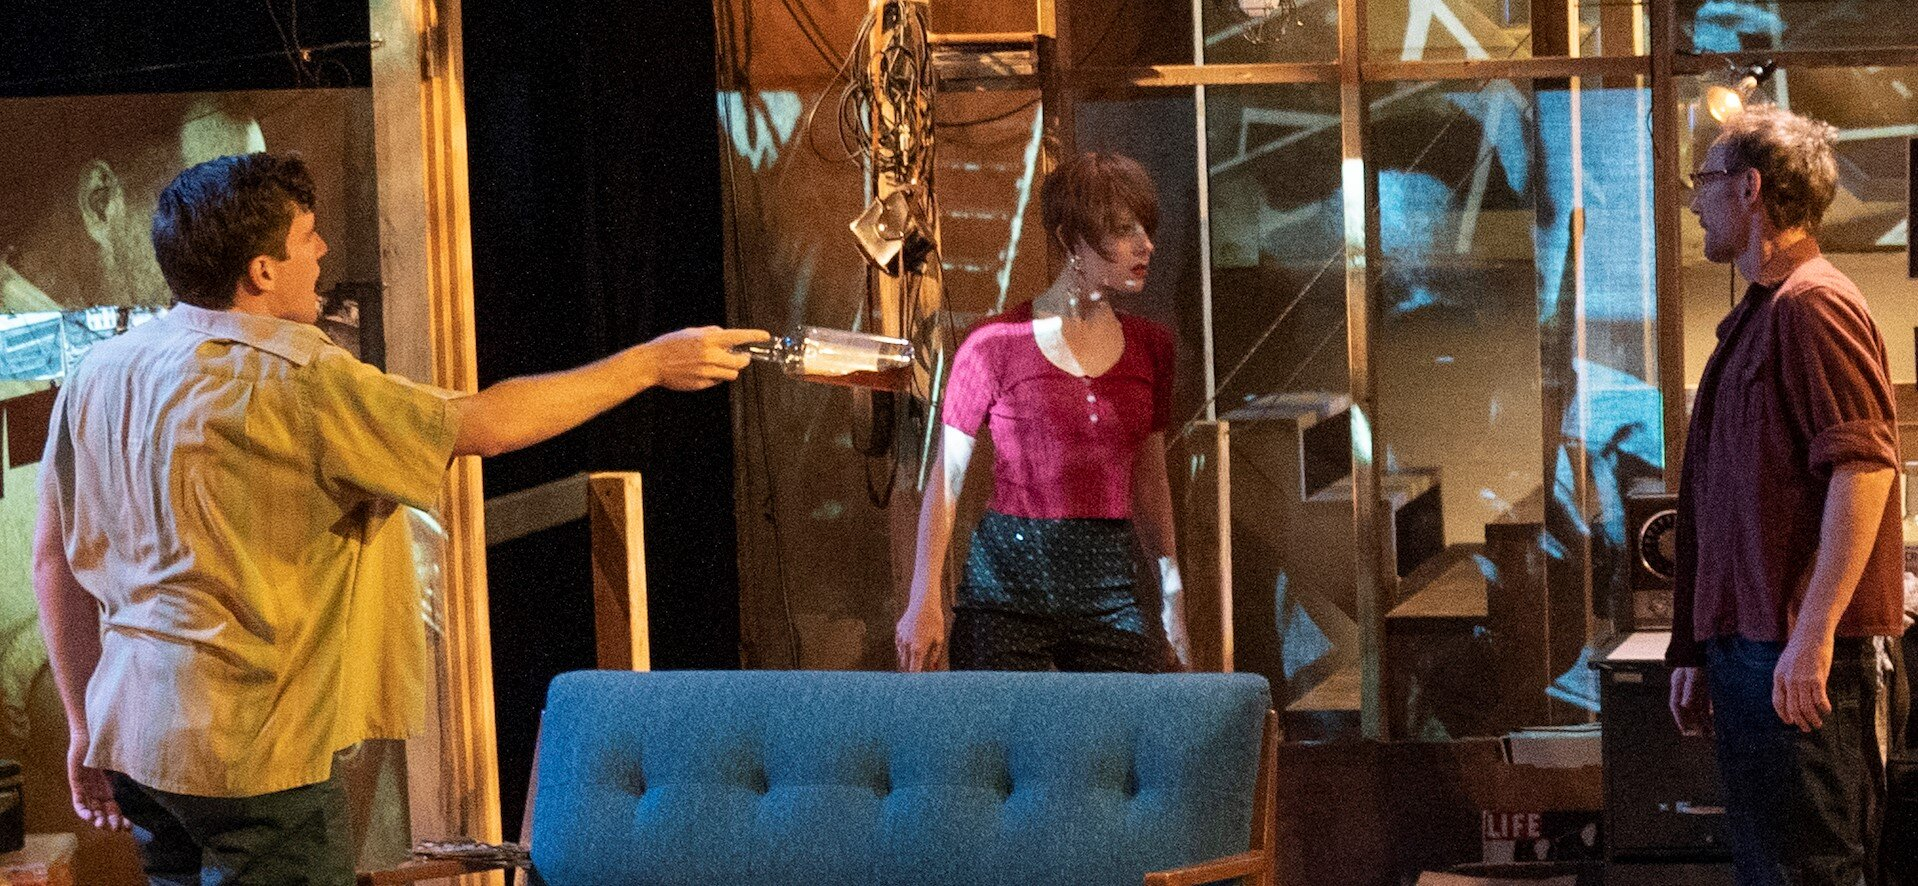 From left: Spencer Hamp, Christina Toth, and P. J. Sosko in  (A)loft Modulation  by Jaymes Jorsling.